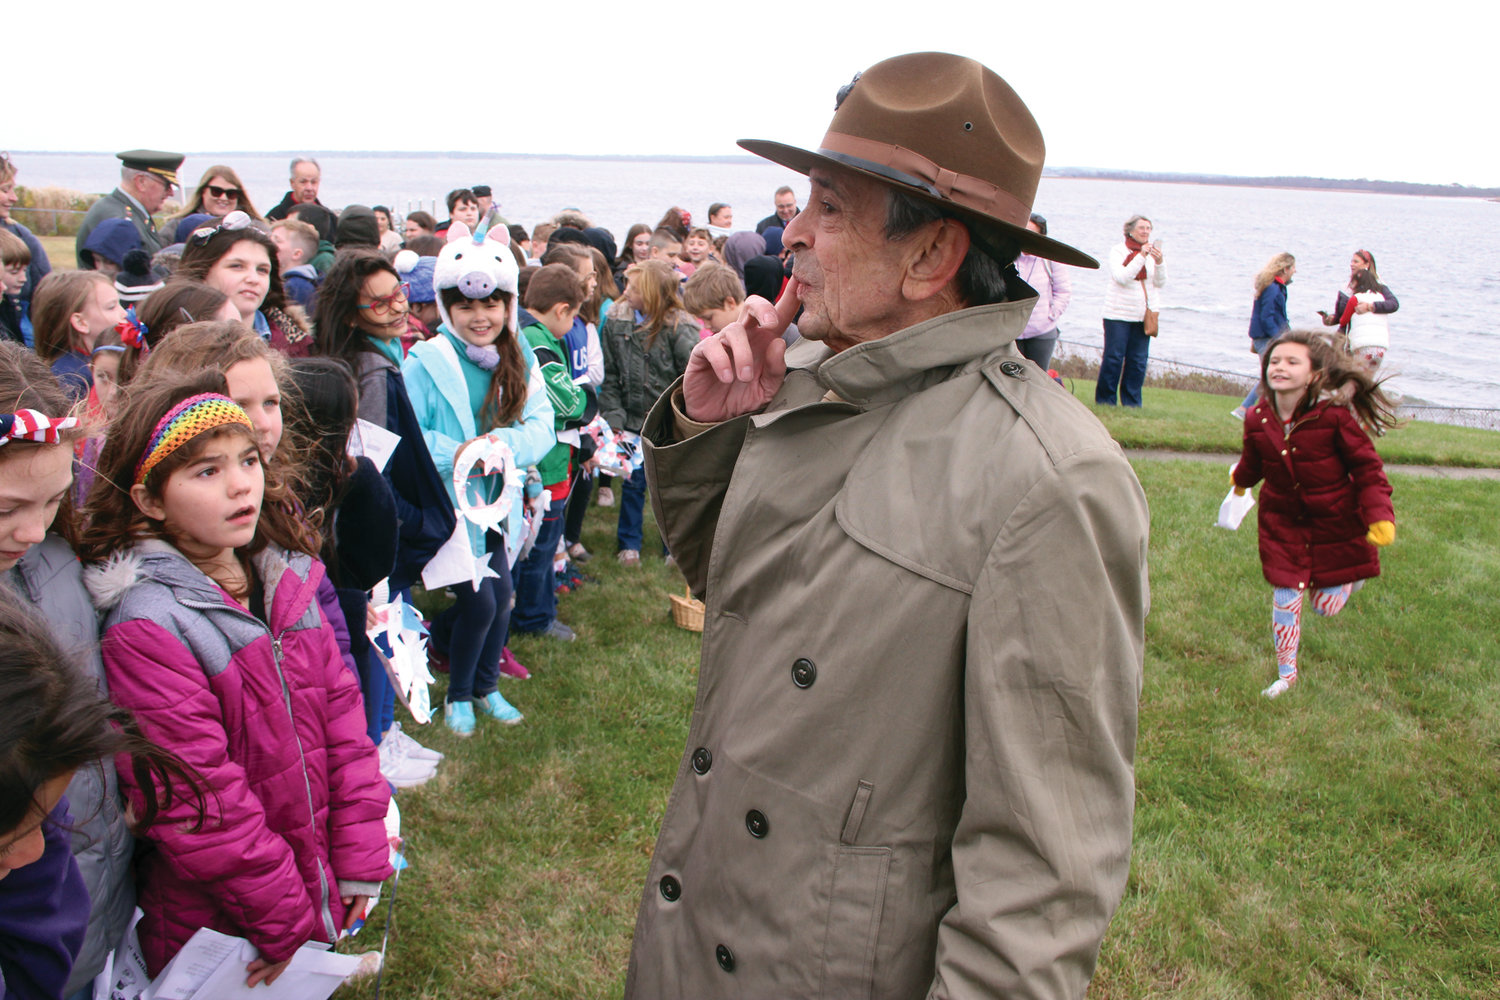 FACE-TO-FACE: At the conclusion of Thursday's ceremony at Warwick Neck Light, Warwick Neck School students had the opportunity to talk with veterans, including Robert Cutler, an Army veteran who served in Vietnam.